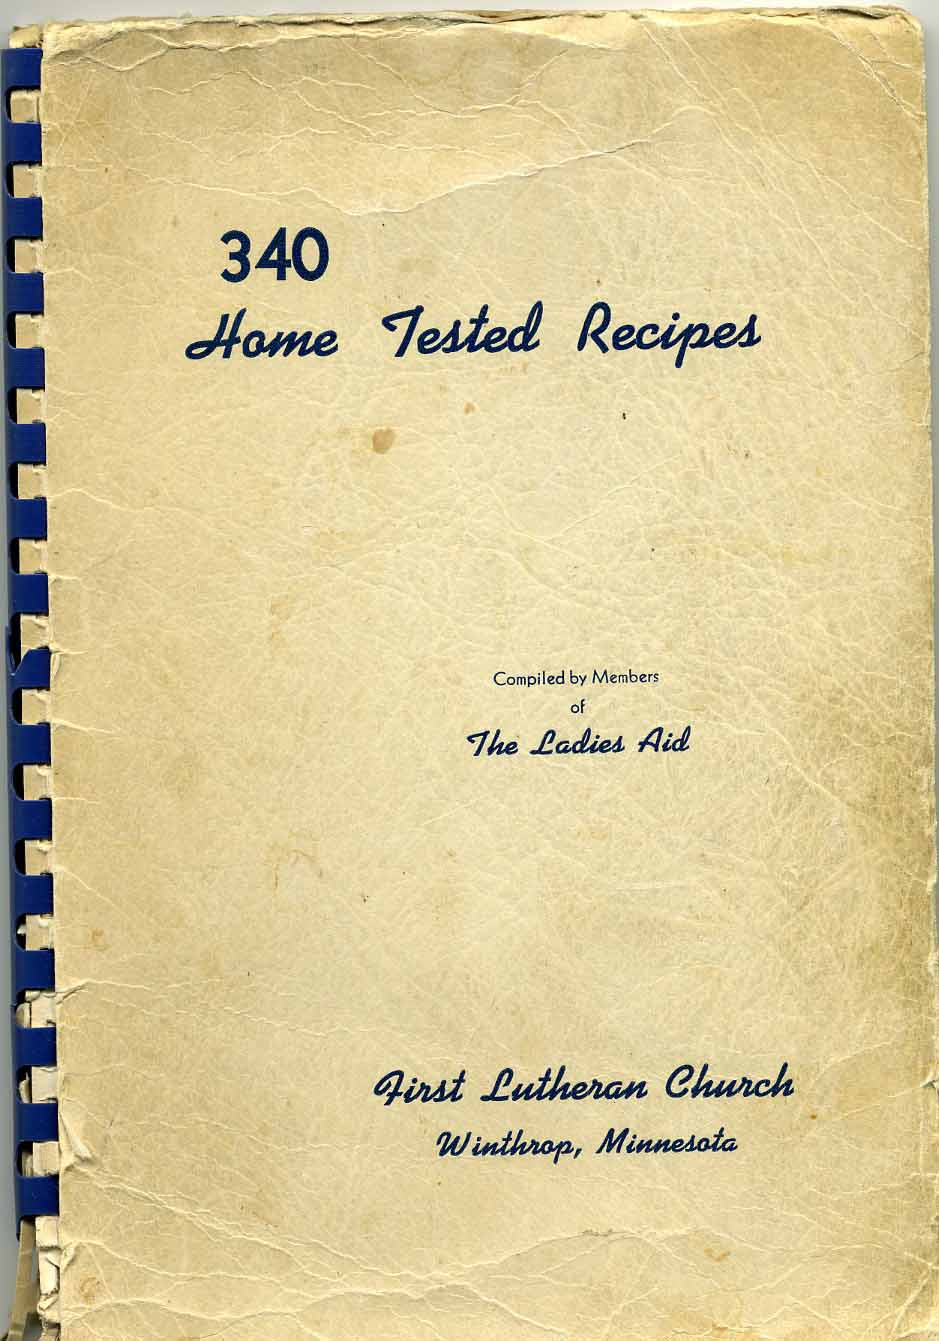 The Winthrop Cookbook